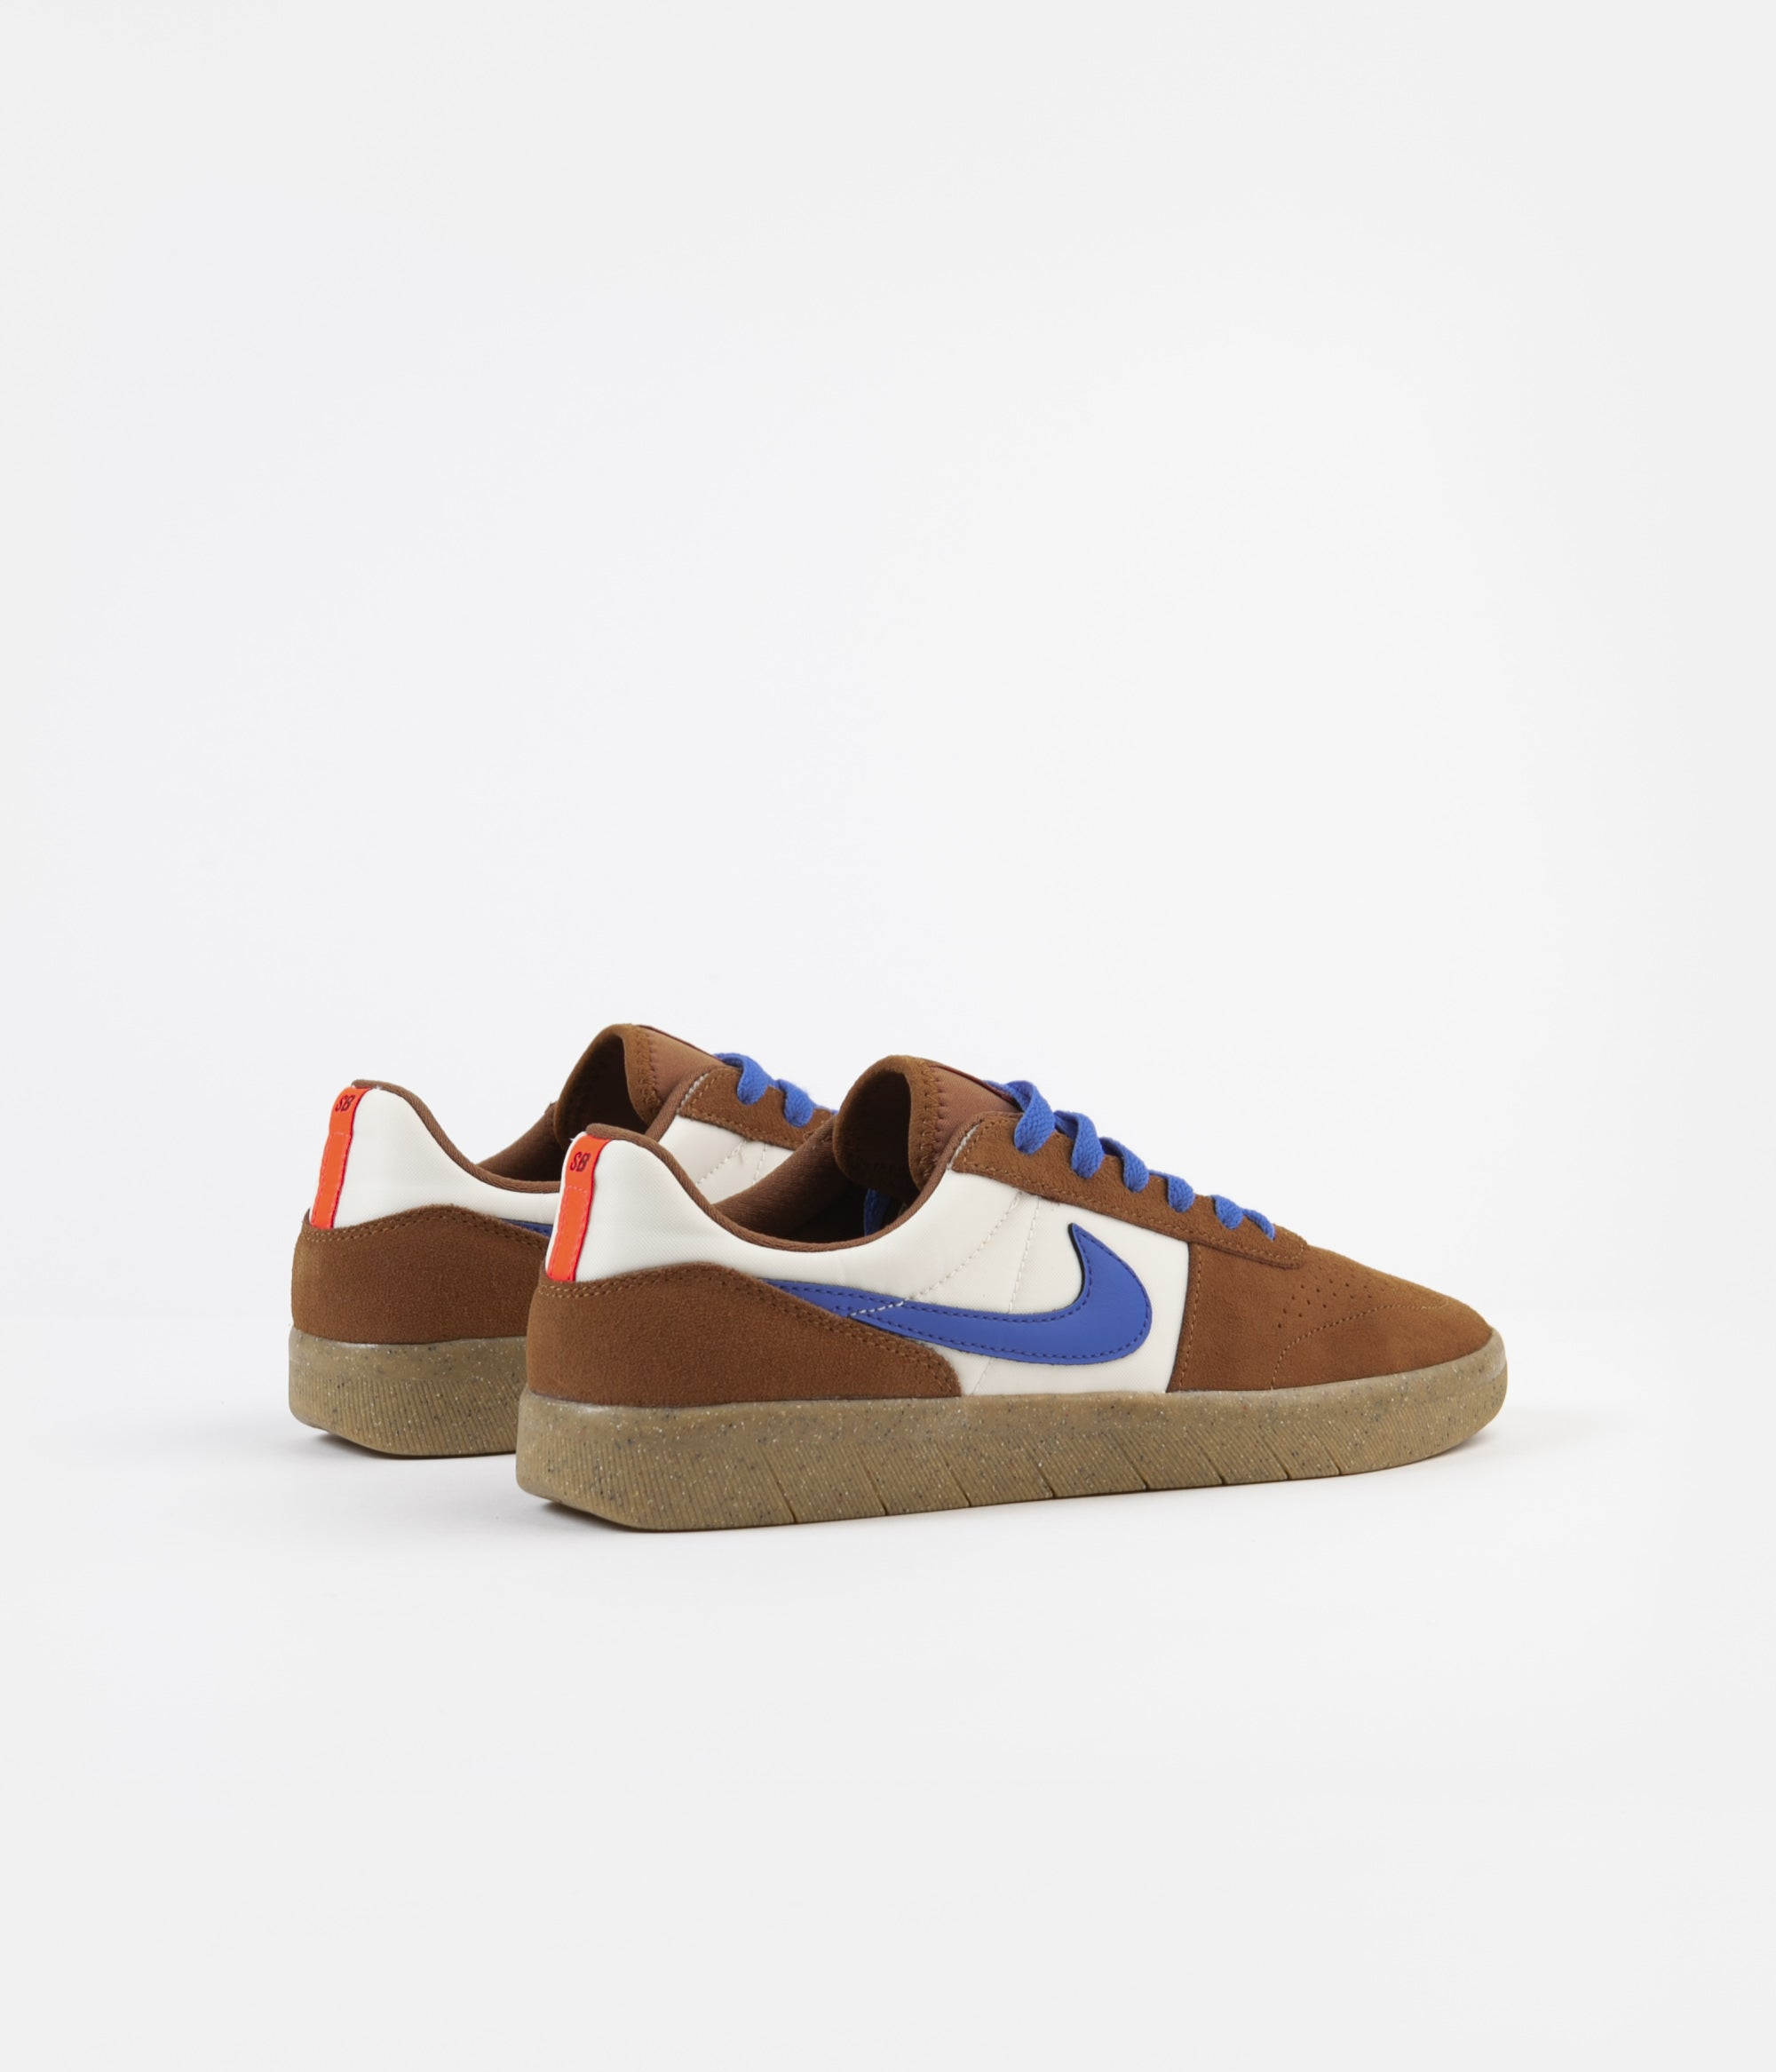 Nike SB Team Classic Shoes - Light British Tan / Pacific Blue - Pale Ivory